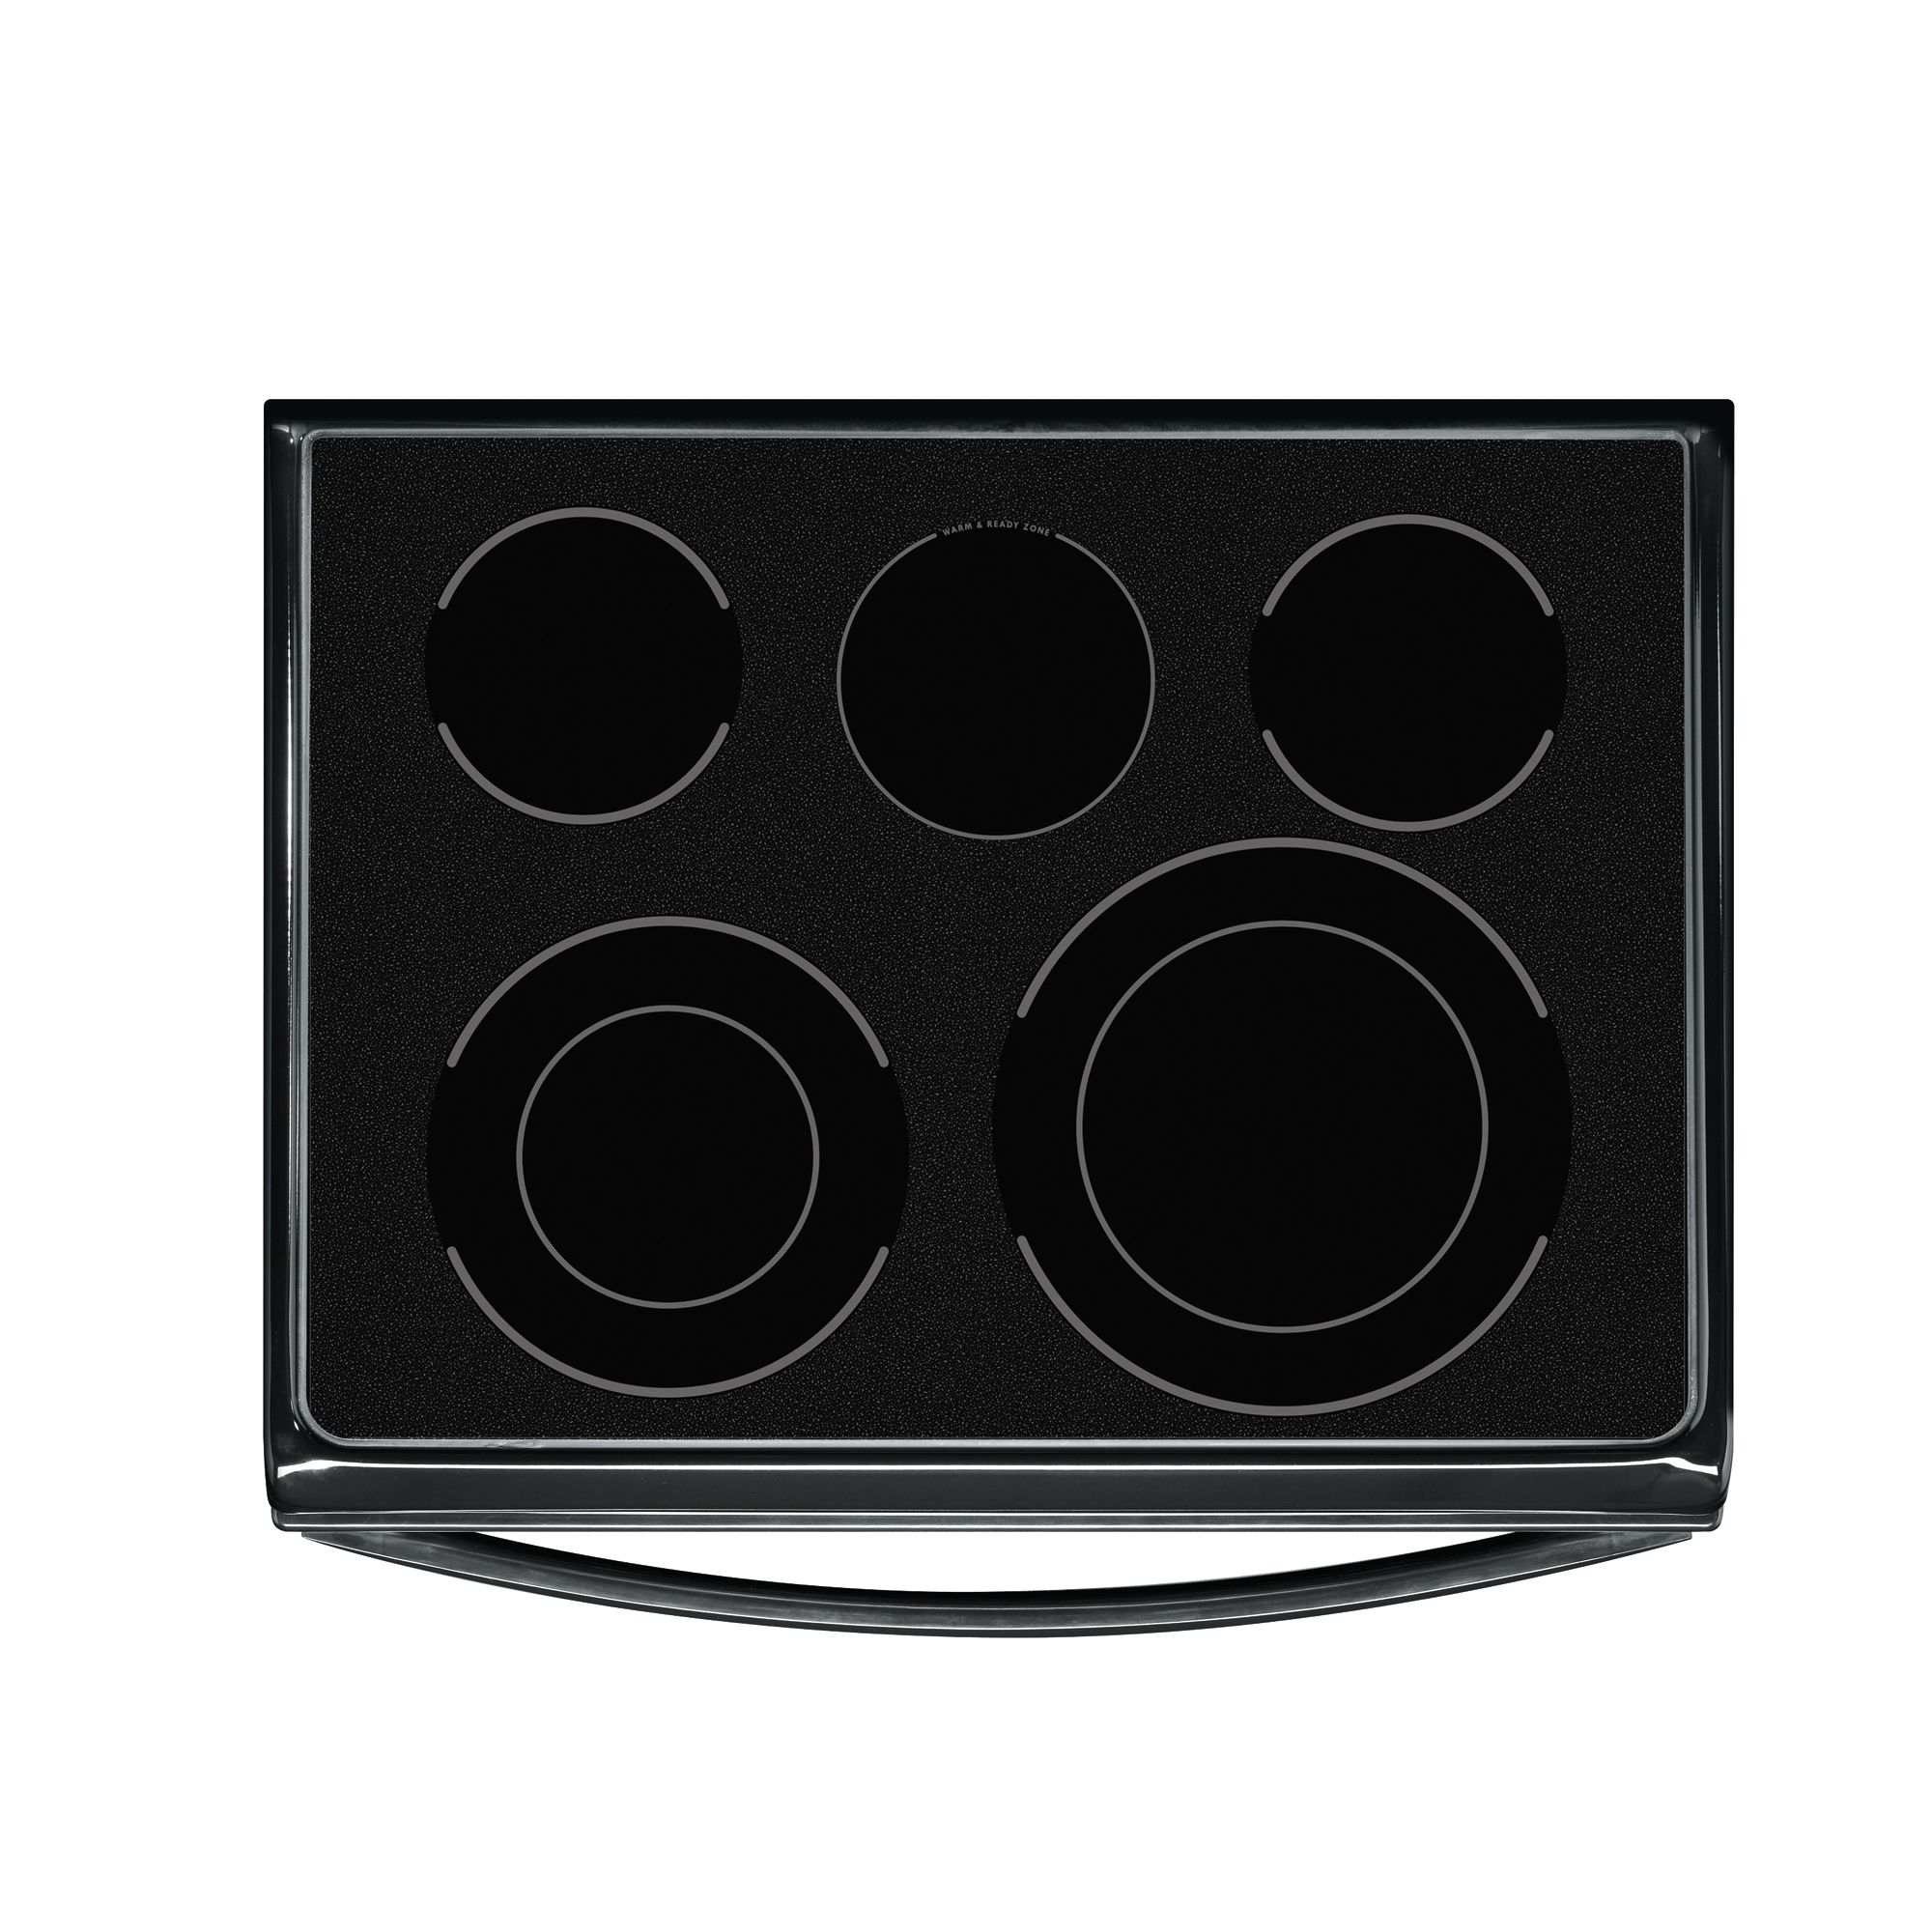 Kenmore 5.4 cu. ft. Electric Range - Black